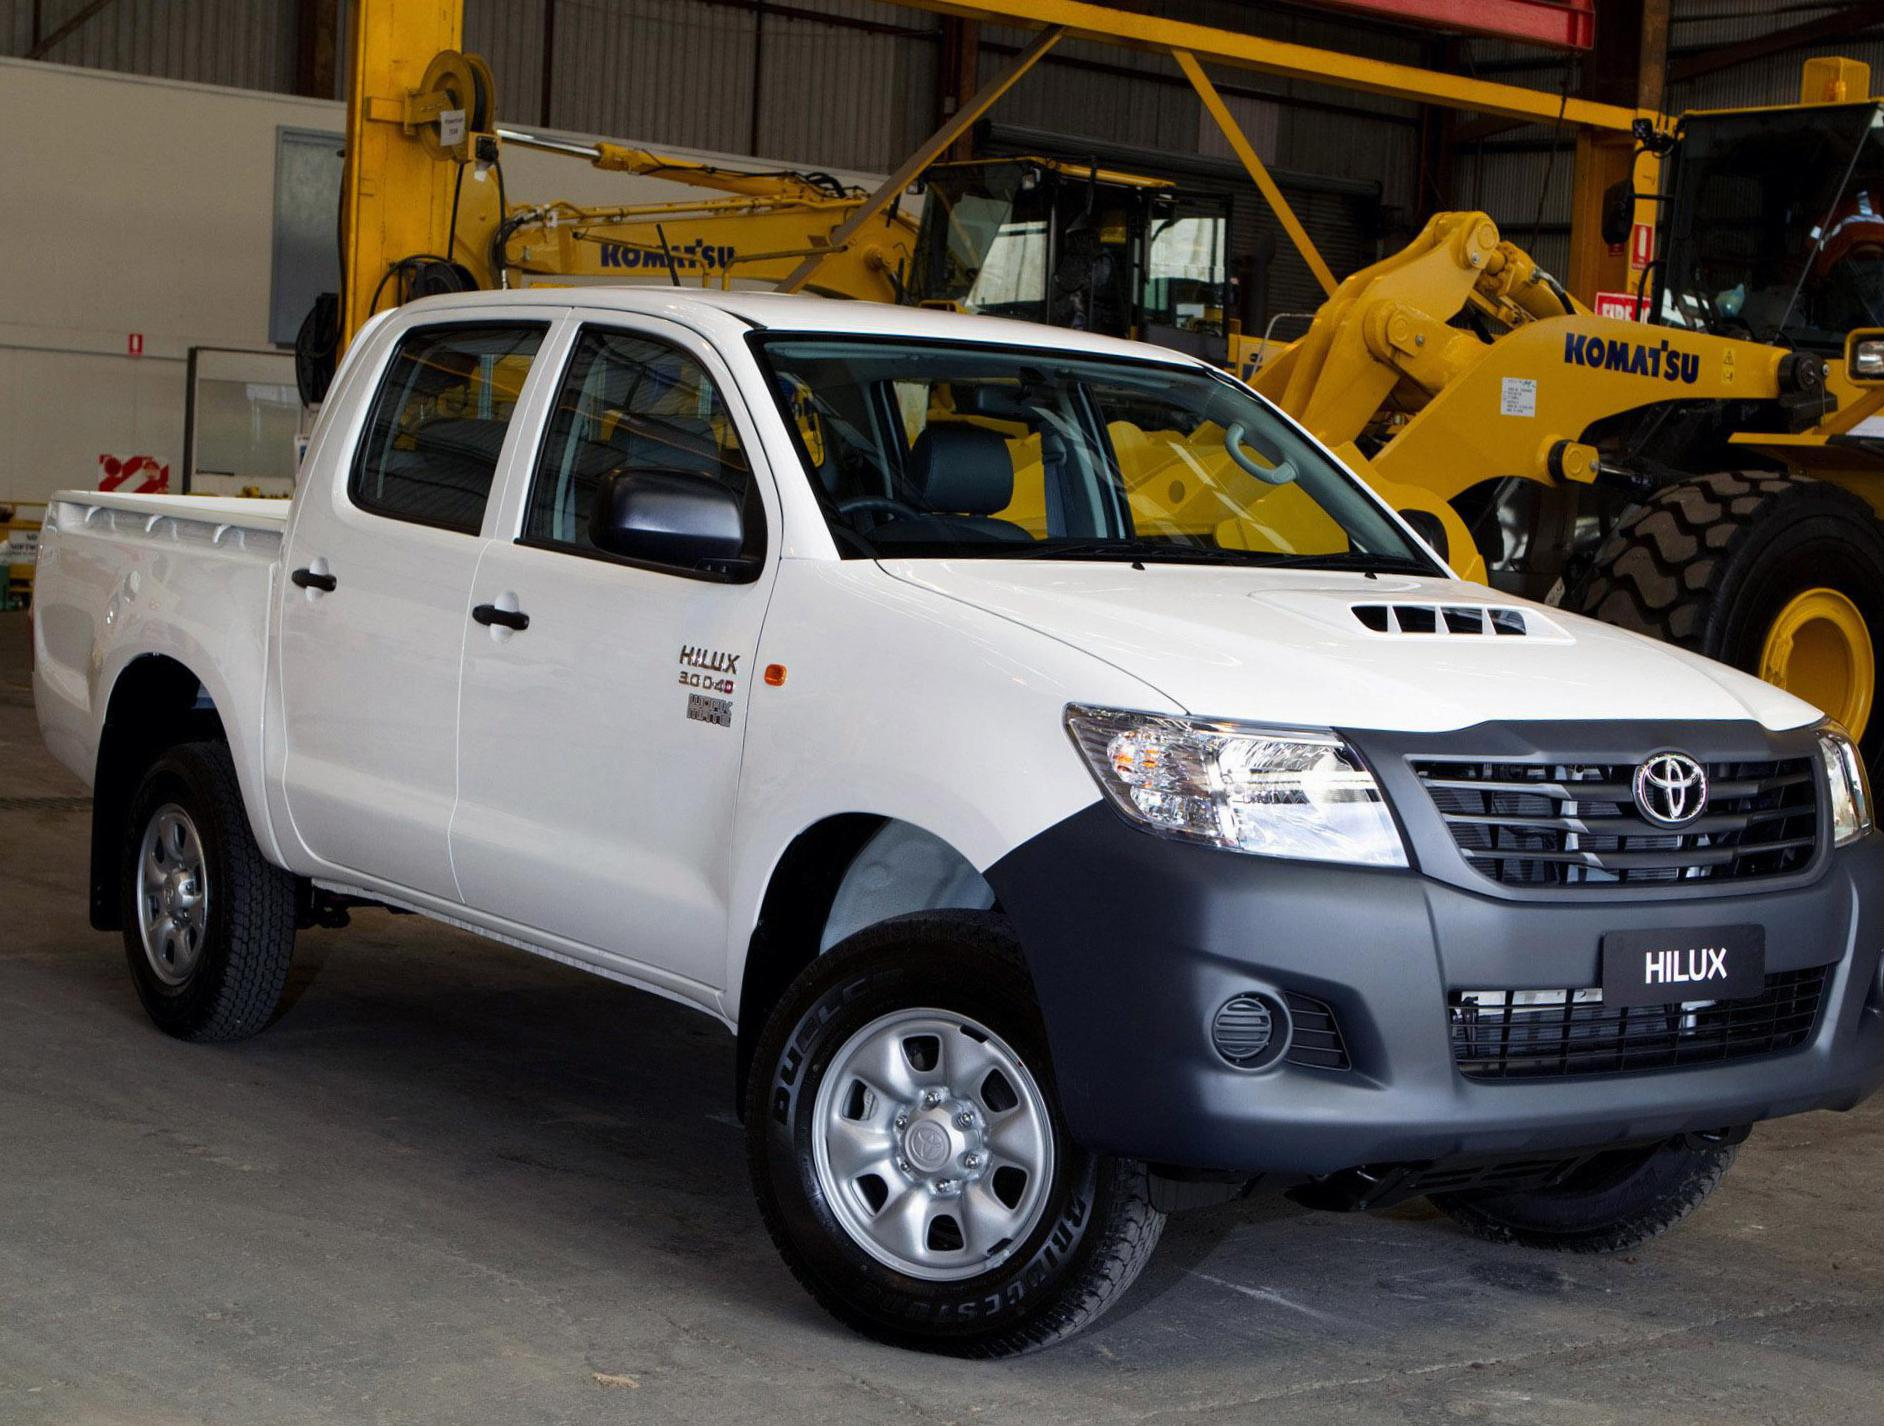 Hilux Double Cab Toyota new 2013